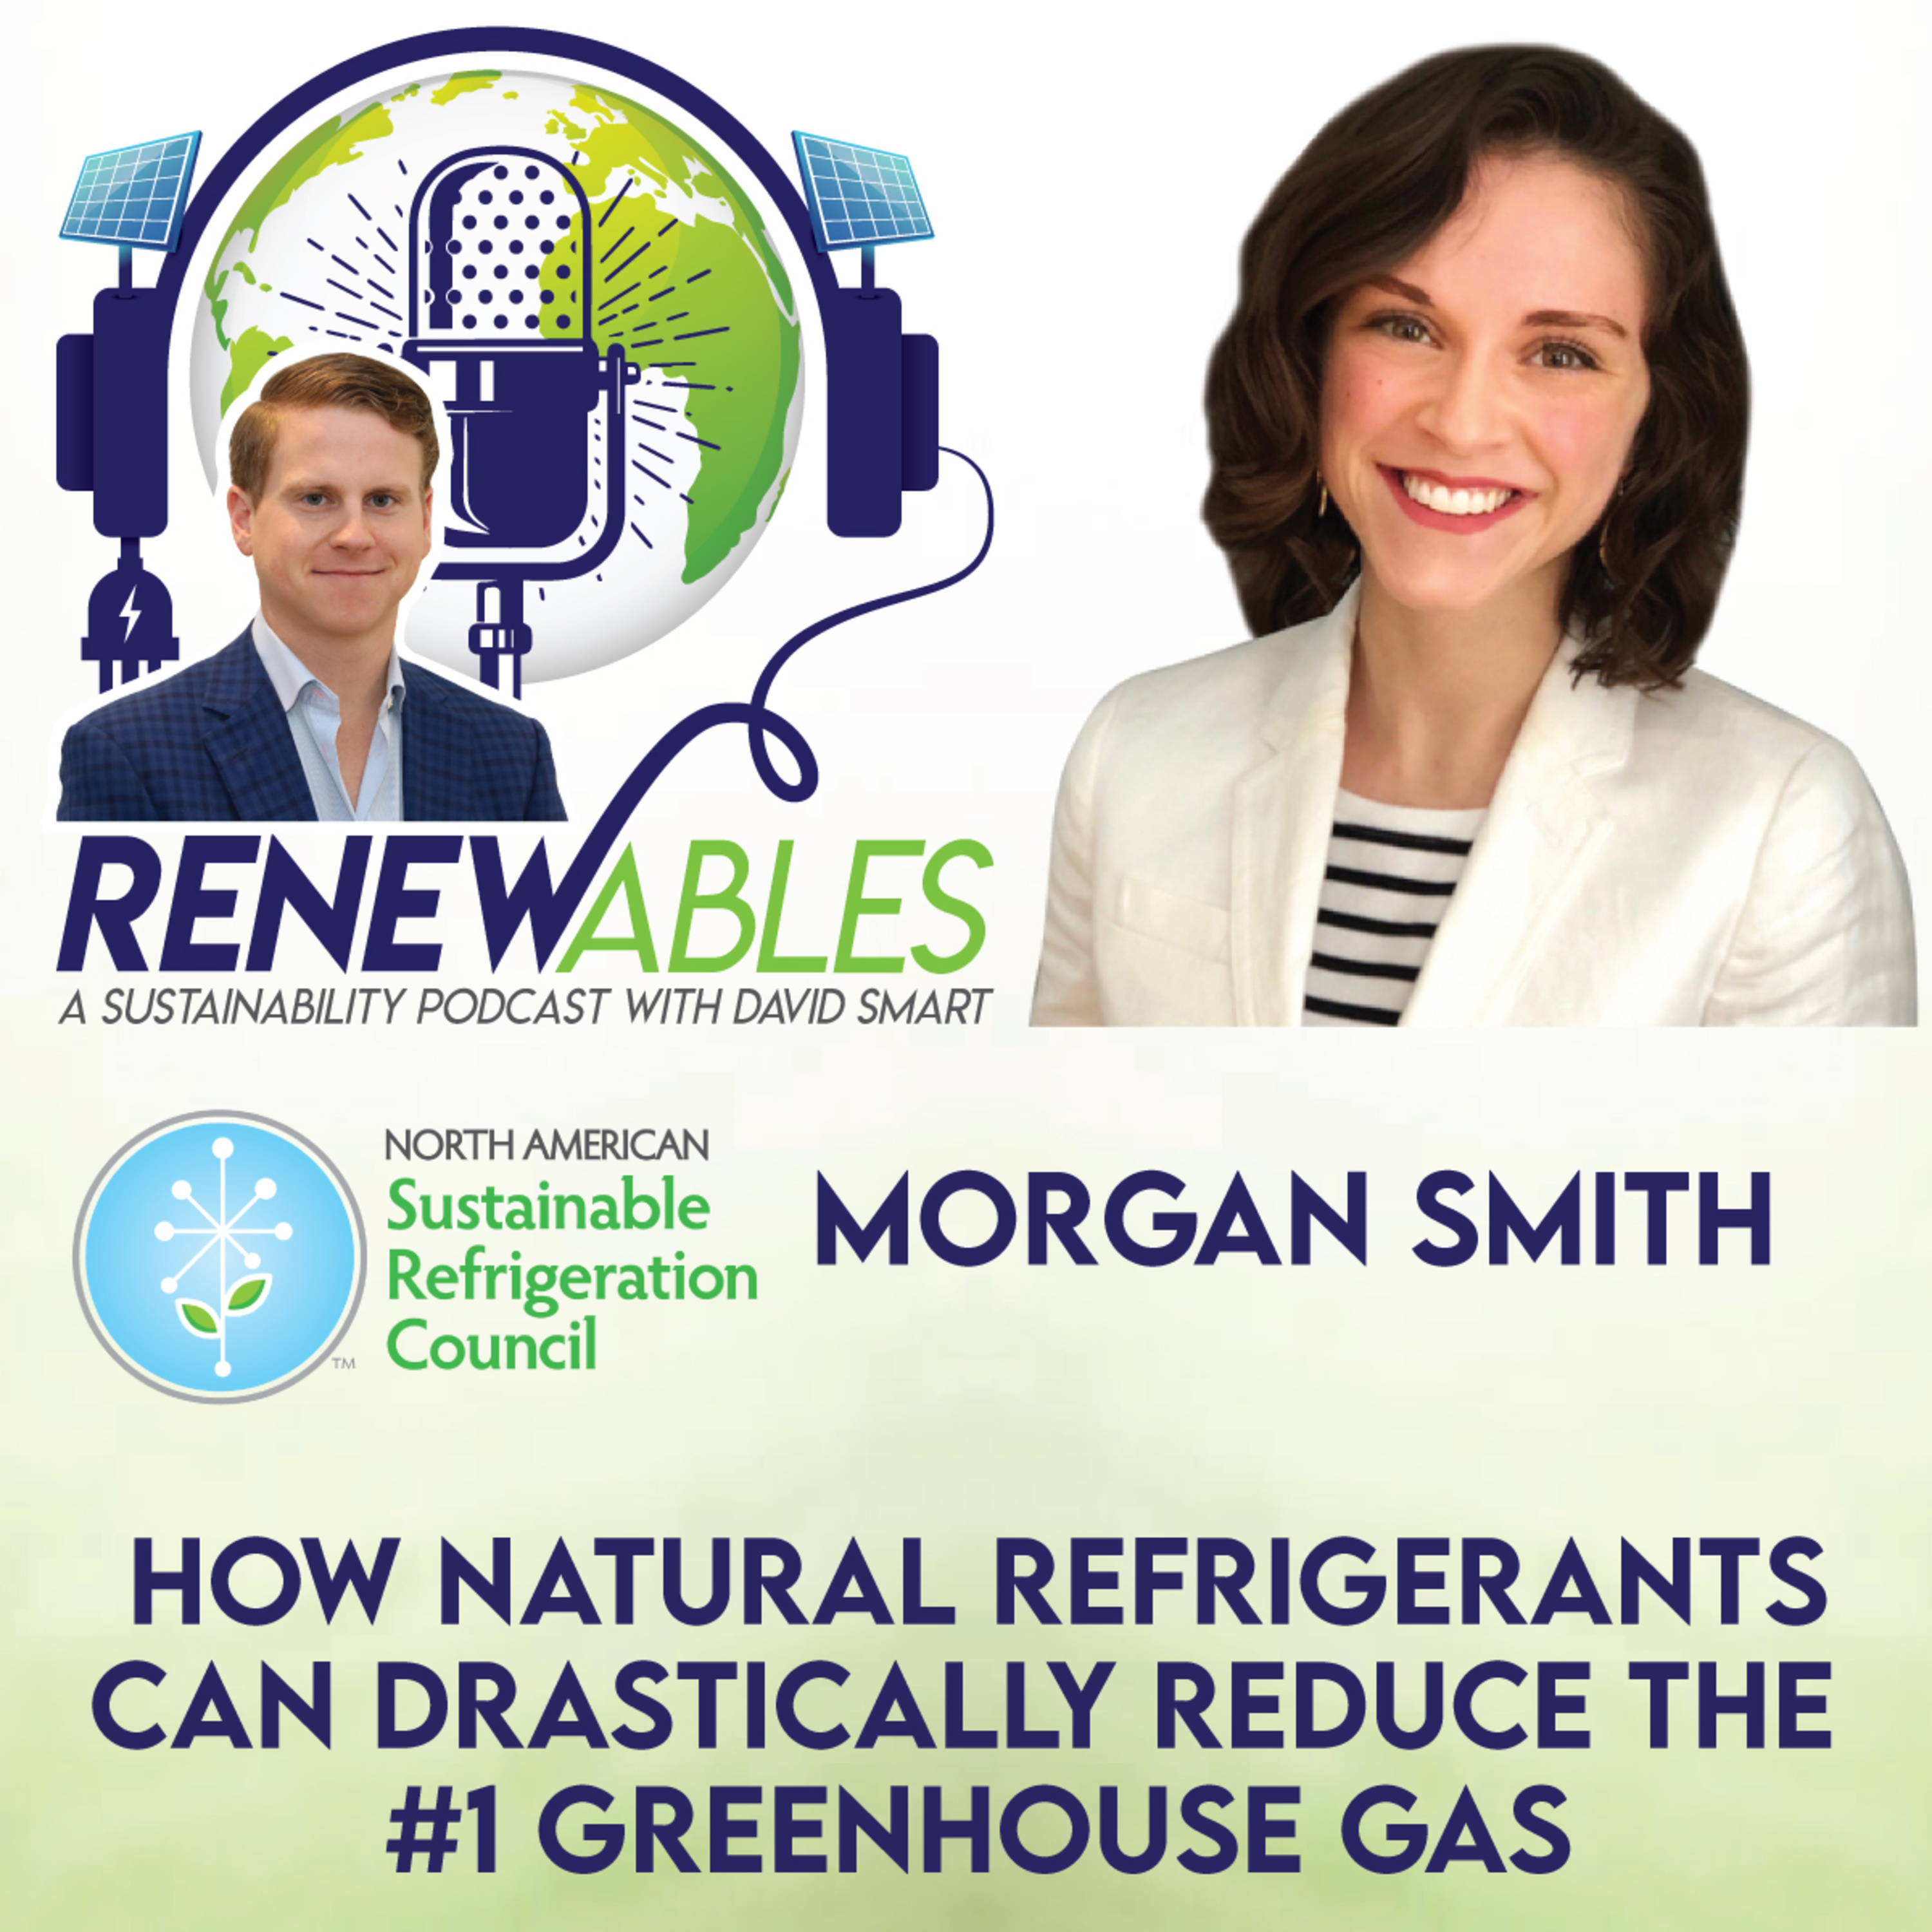 RENEWables Podcast: How Natural Refrigerants Can Drastically Reduce the #1 GHG